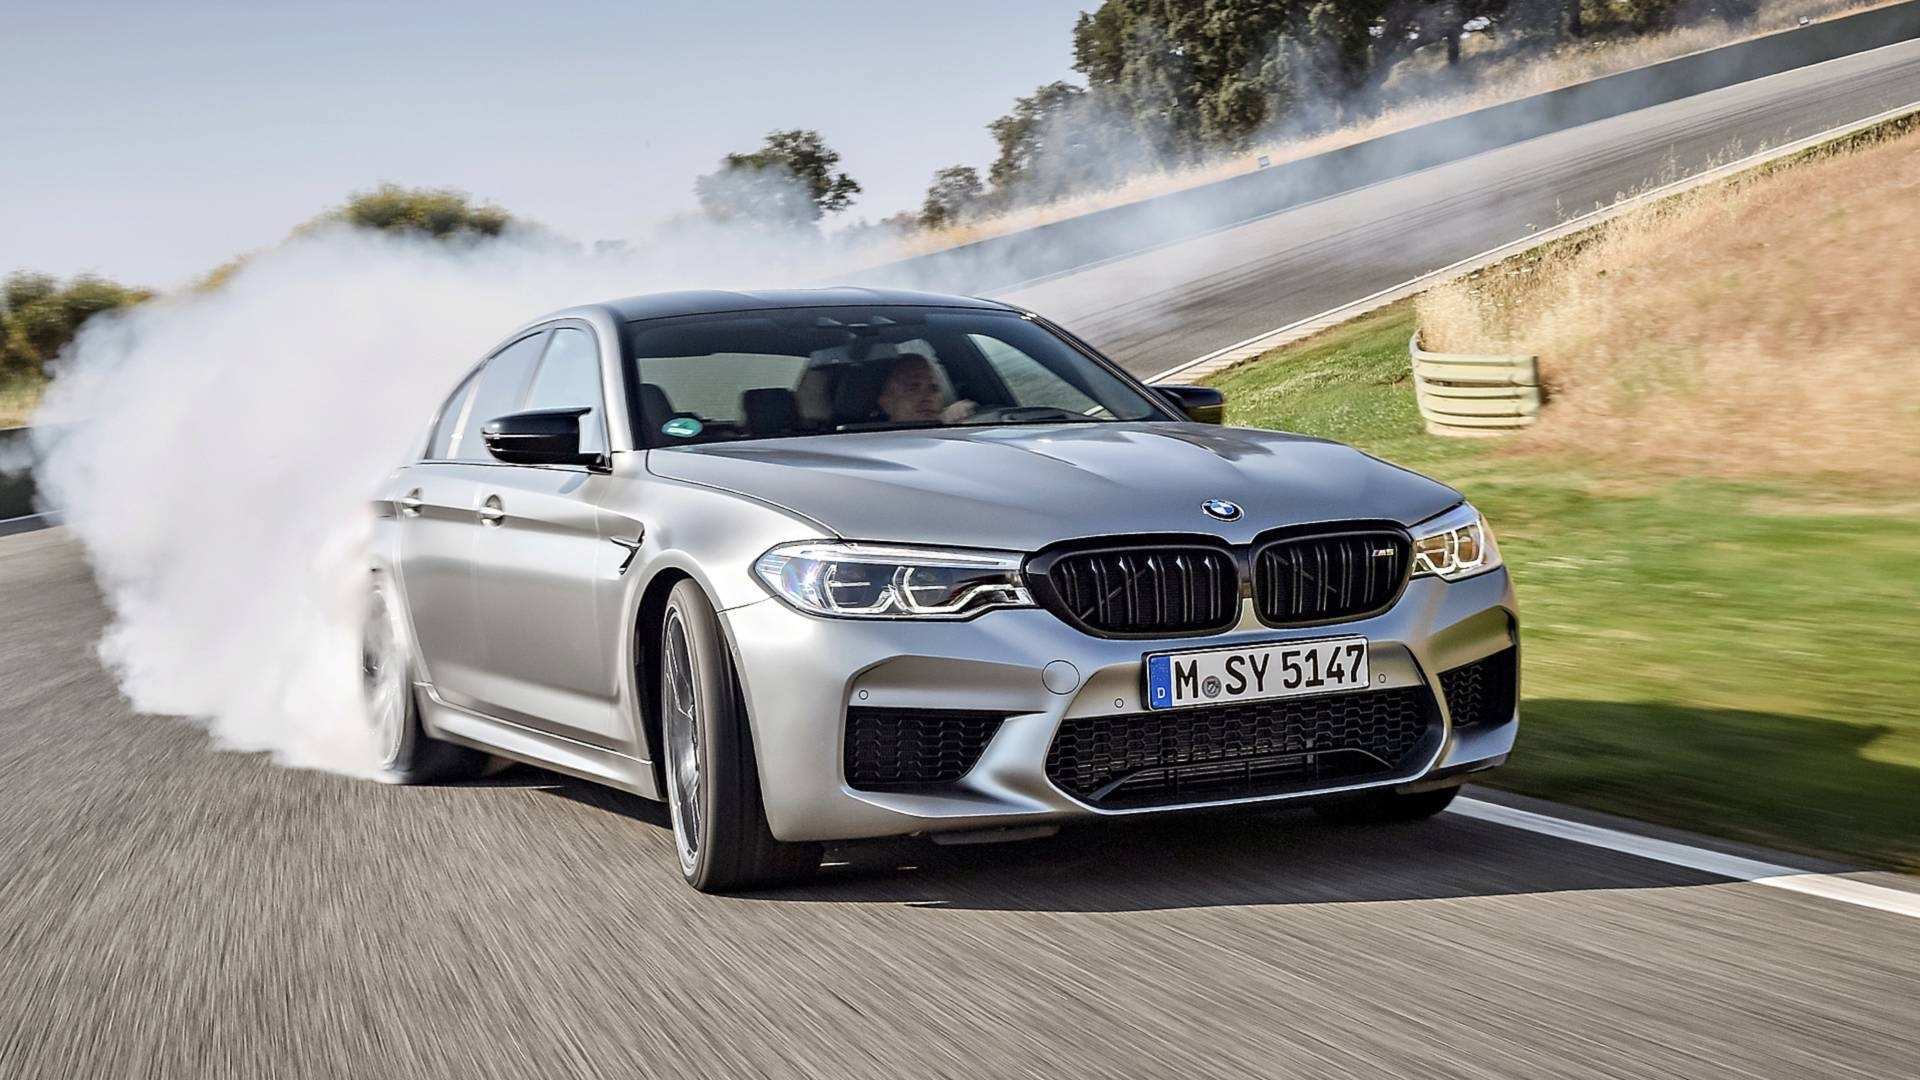 22 All New Bmw M5 Redesign Spy Shoot with Bmw M5 Redesign